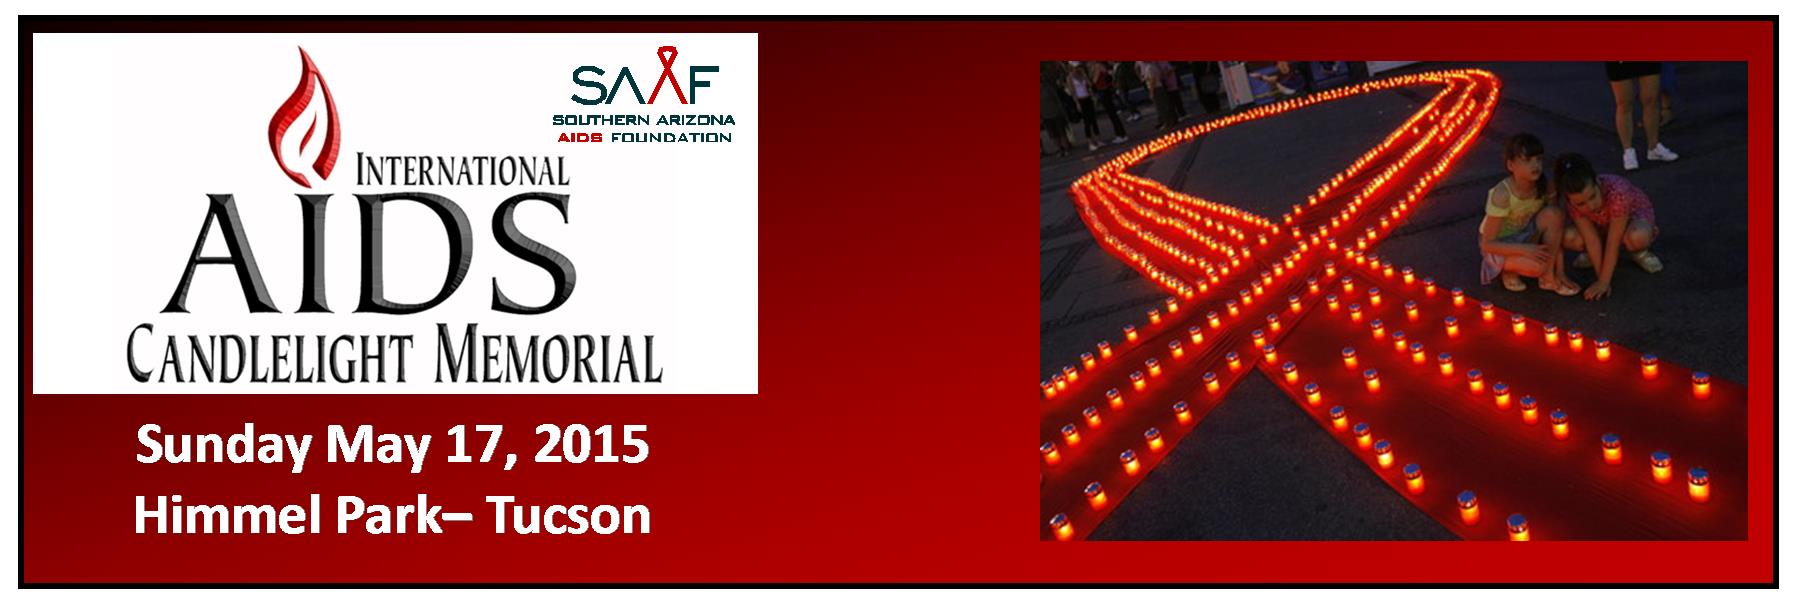 The 33rd Annual International AIDS Candlelight Memorial is Sunday May 17 at Himmel Park.